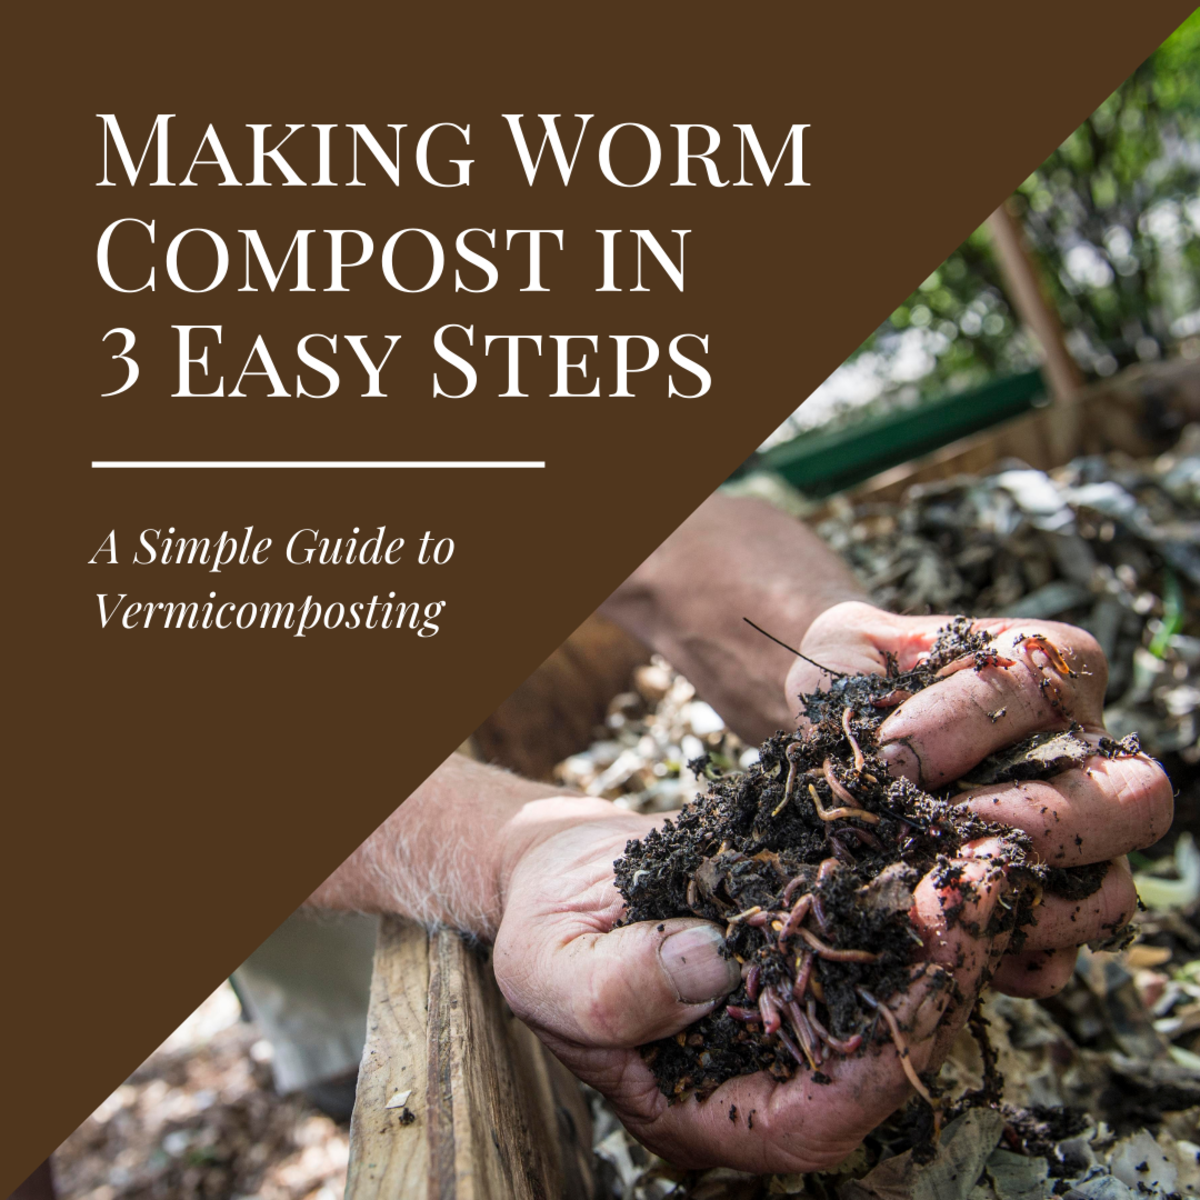 This article will show you how to start worm composting in three easy and simple steps.